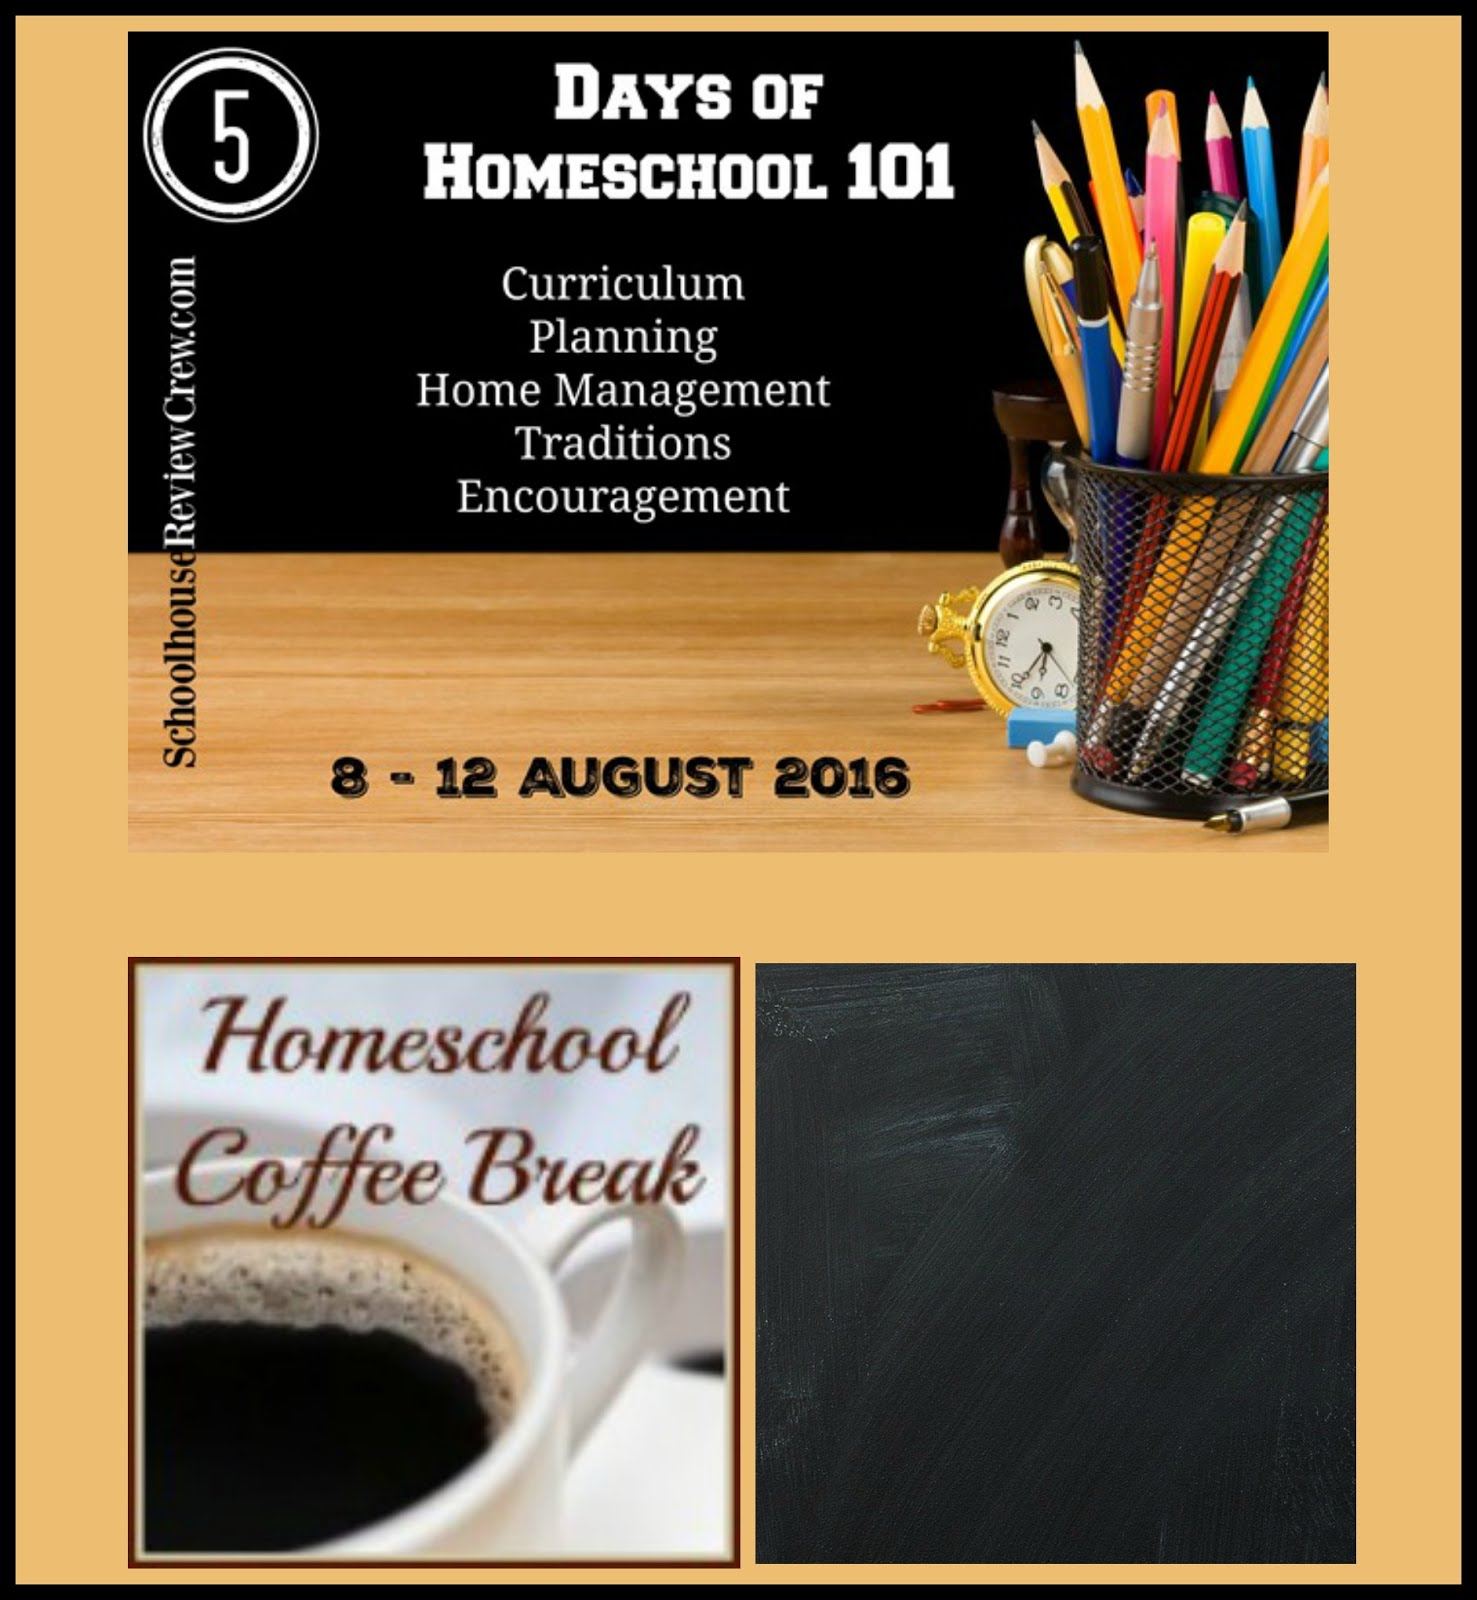 5 Days of Homeschool 101